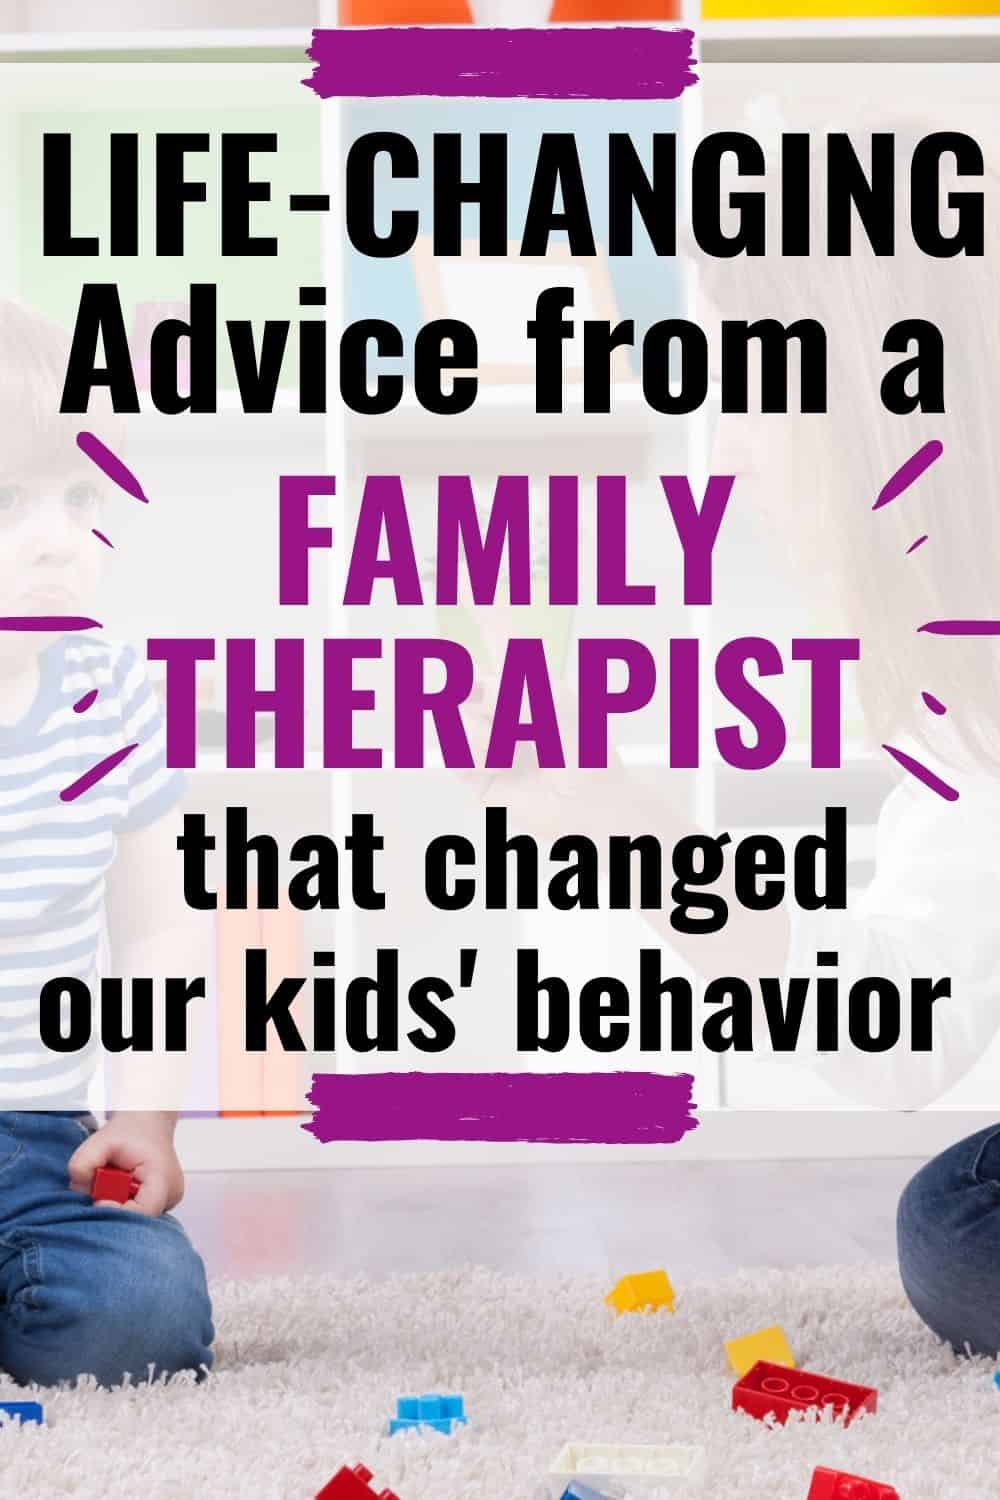 family therapist advice for behavior issues